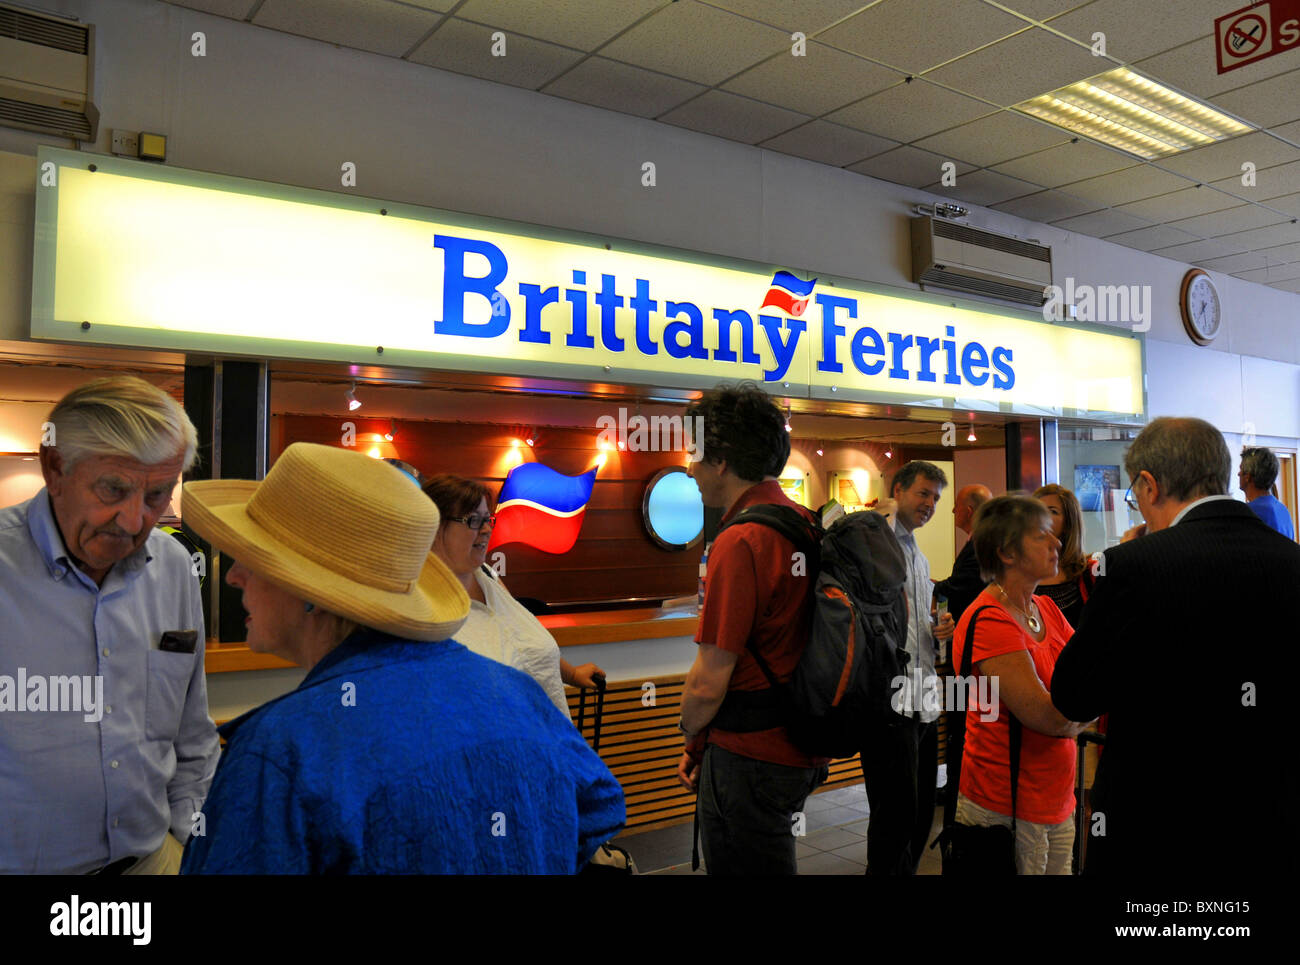 Brittany Ferries check-in, Portsmouth Ferry Terminal, Portsmouth, Hampshire, Britain, UK - Stock Image